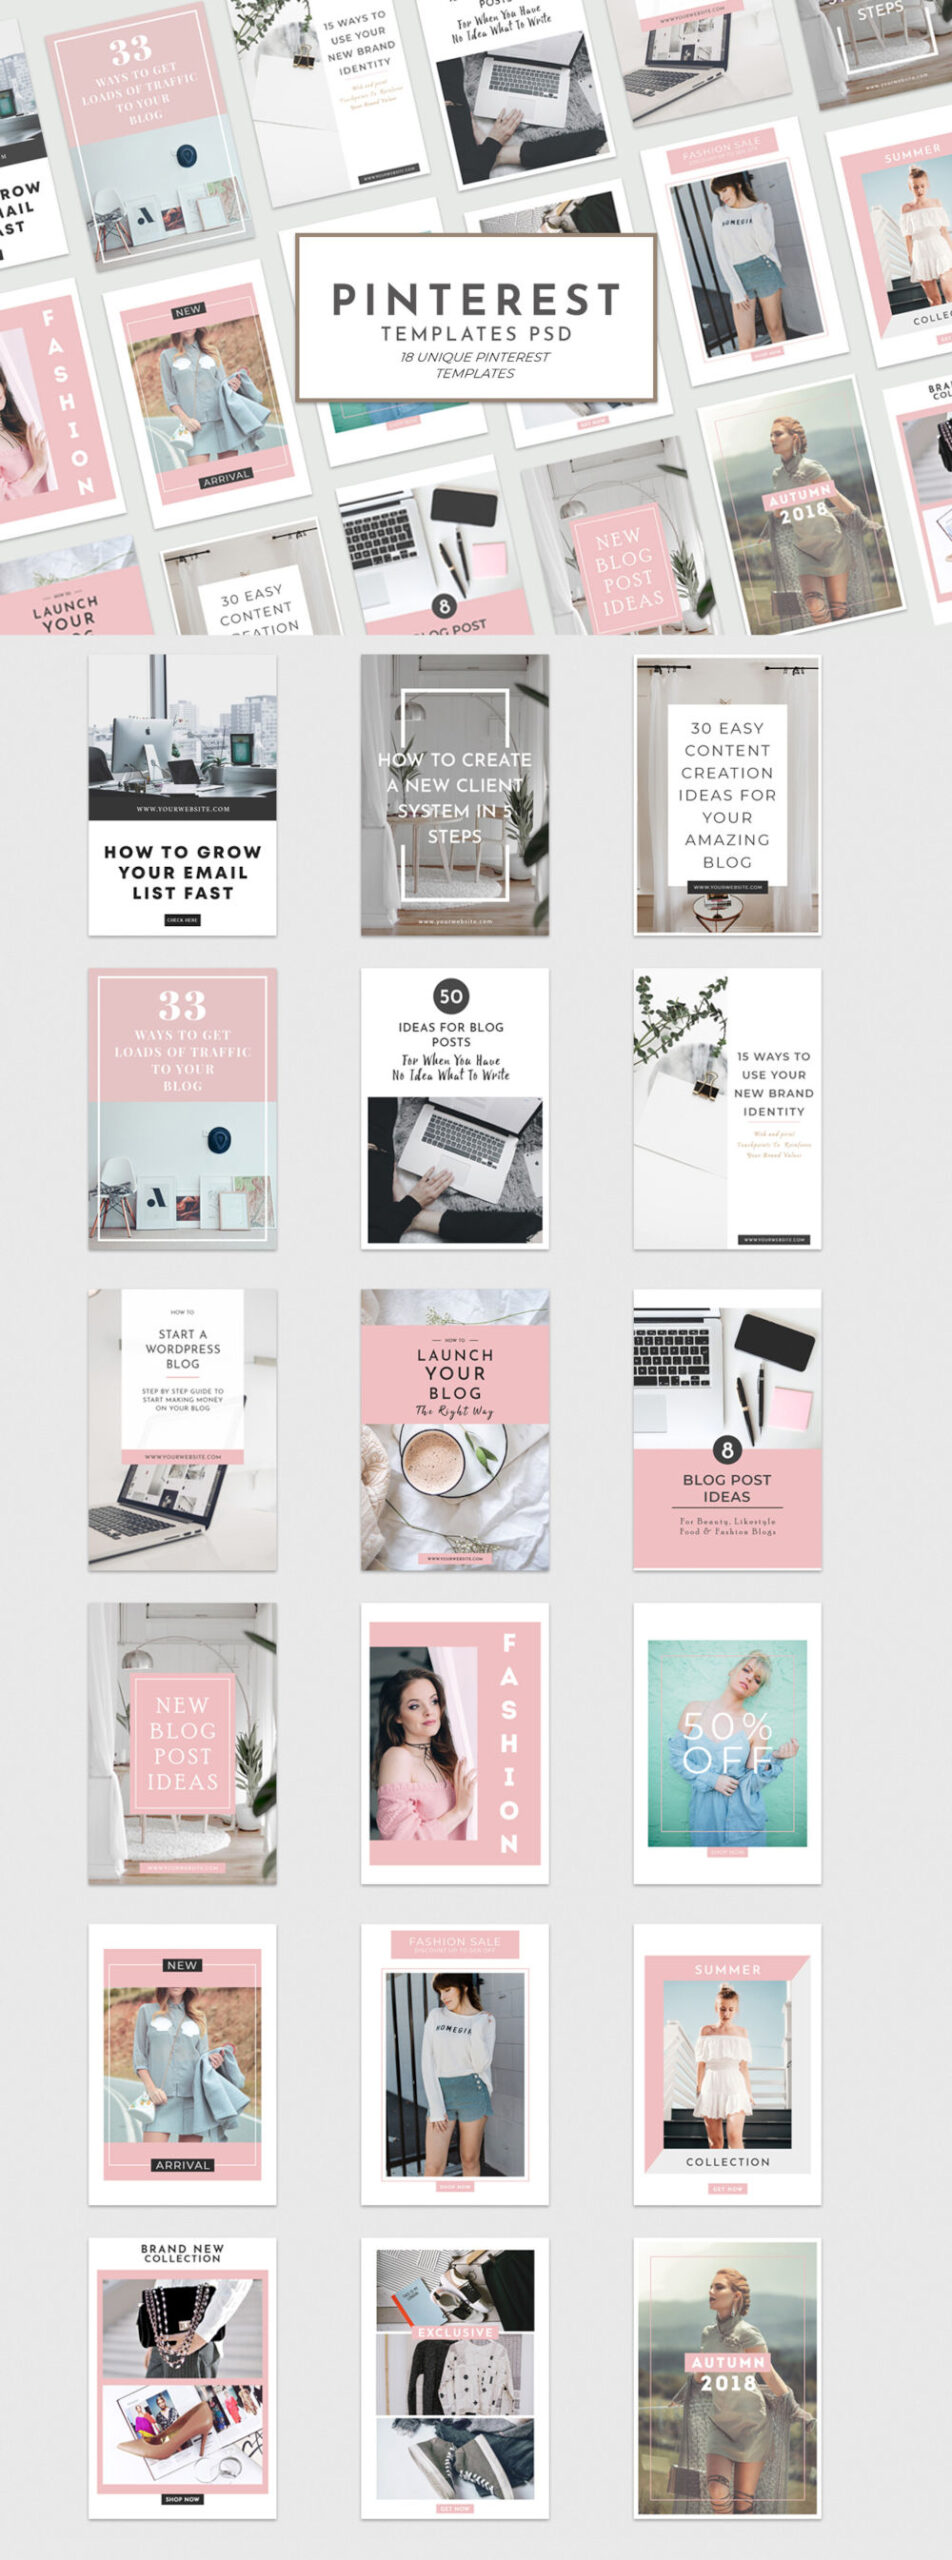 Free Unique Pinterest Pin Templates for Bloggers